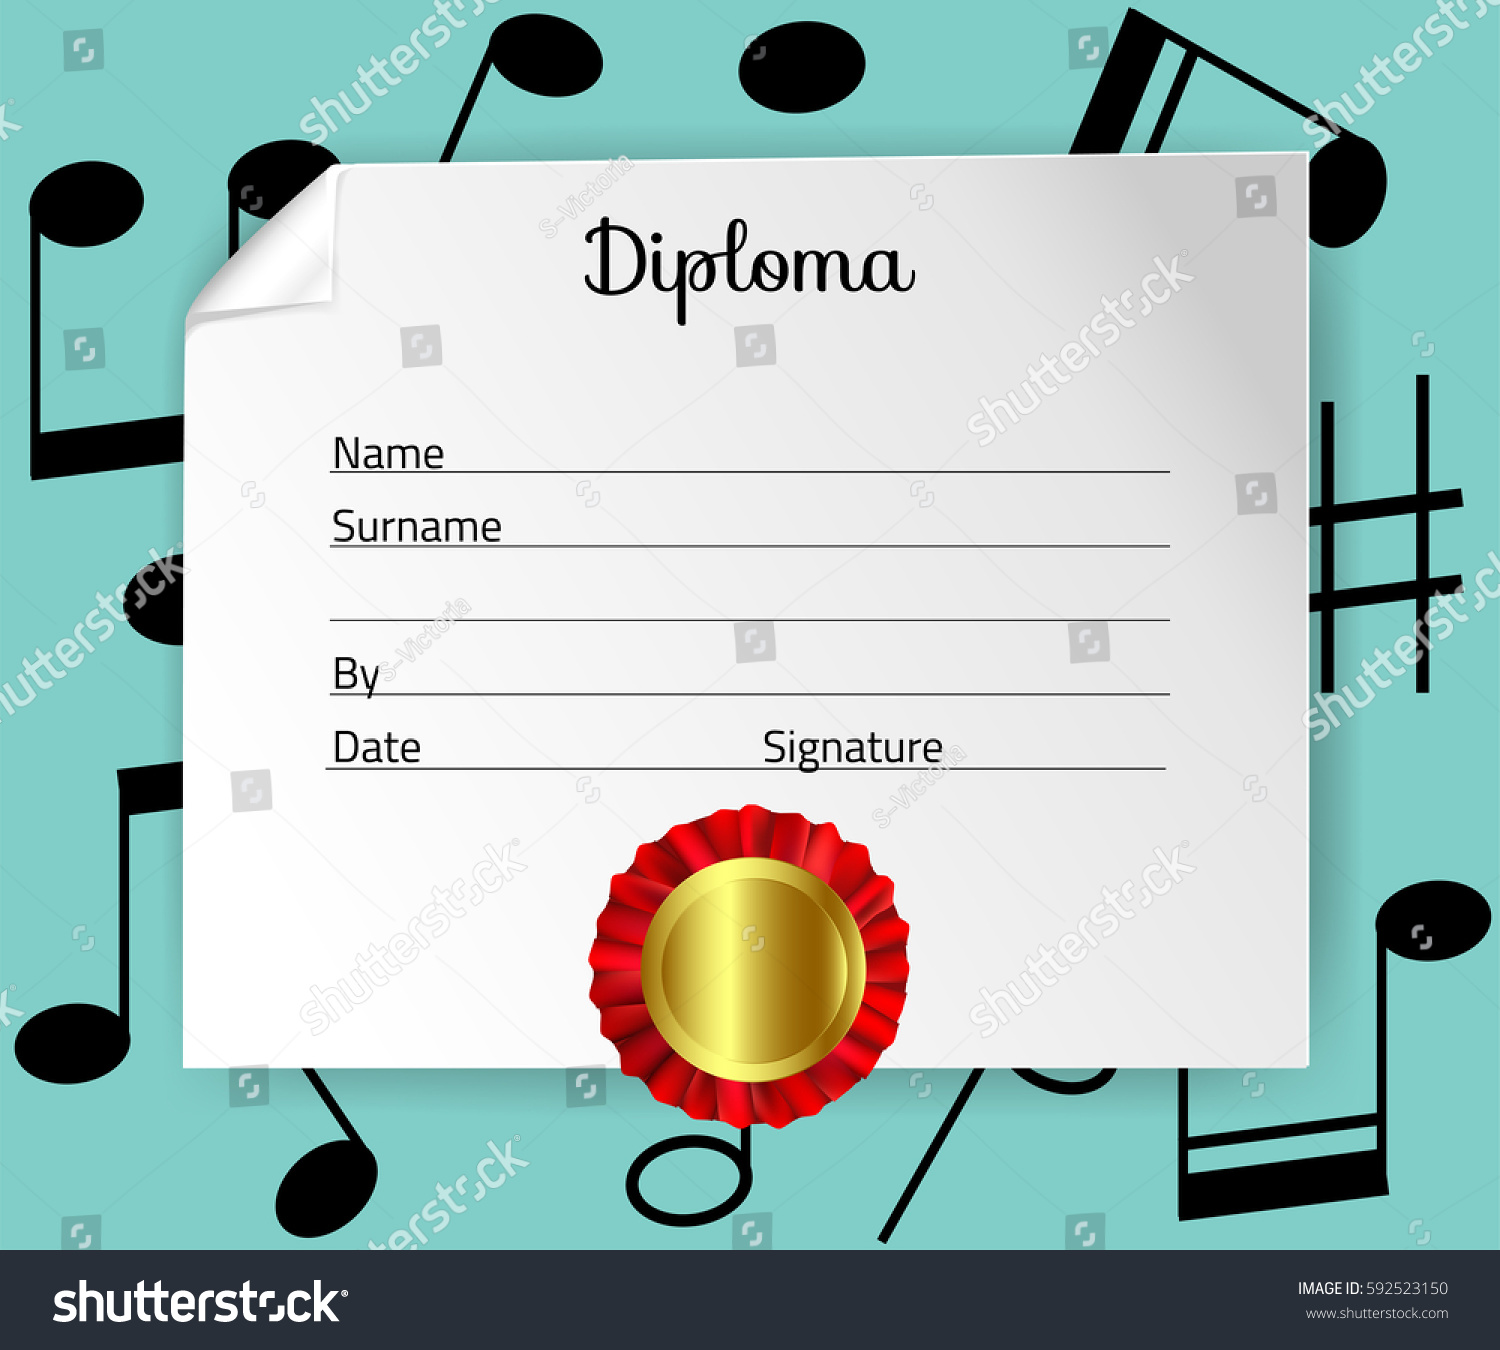 Diploma template kids certificate background preschool stock diploma template for kids certificate background for preschool musical school or playschool vector yelopaper Images